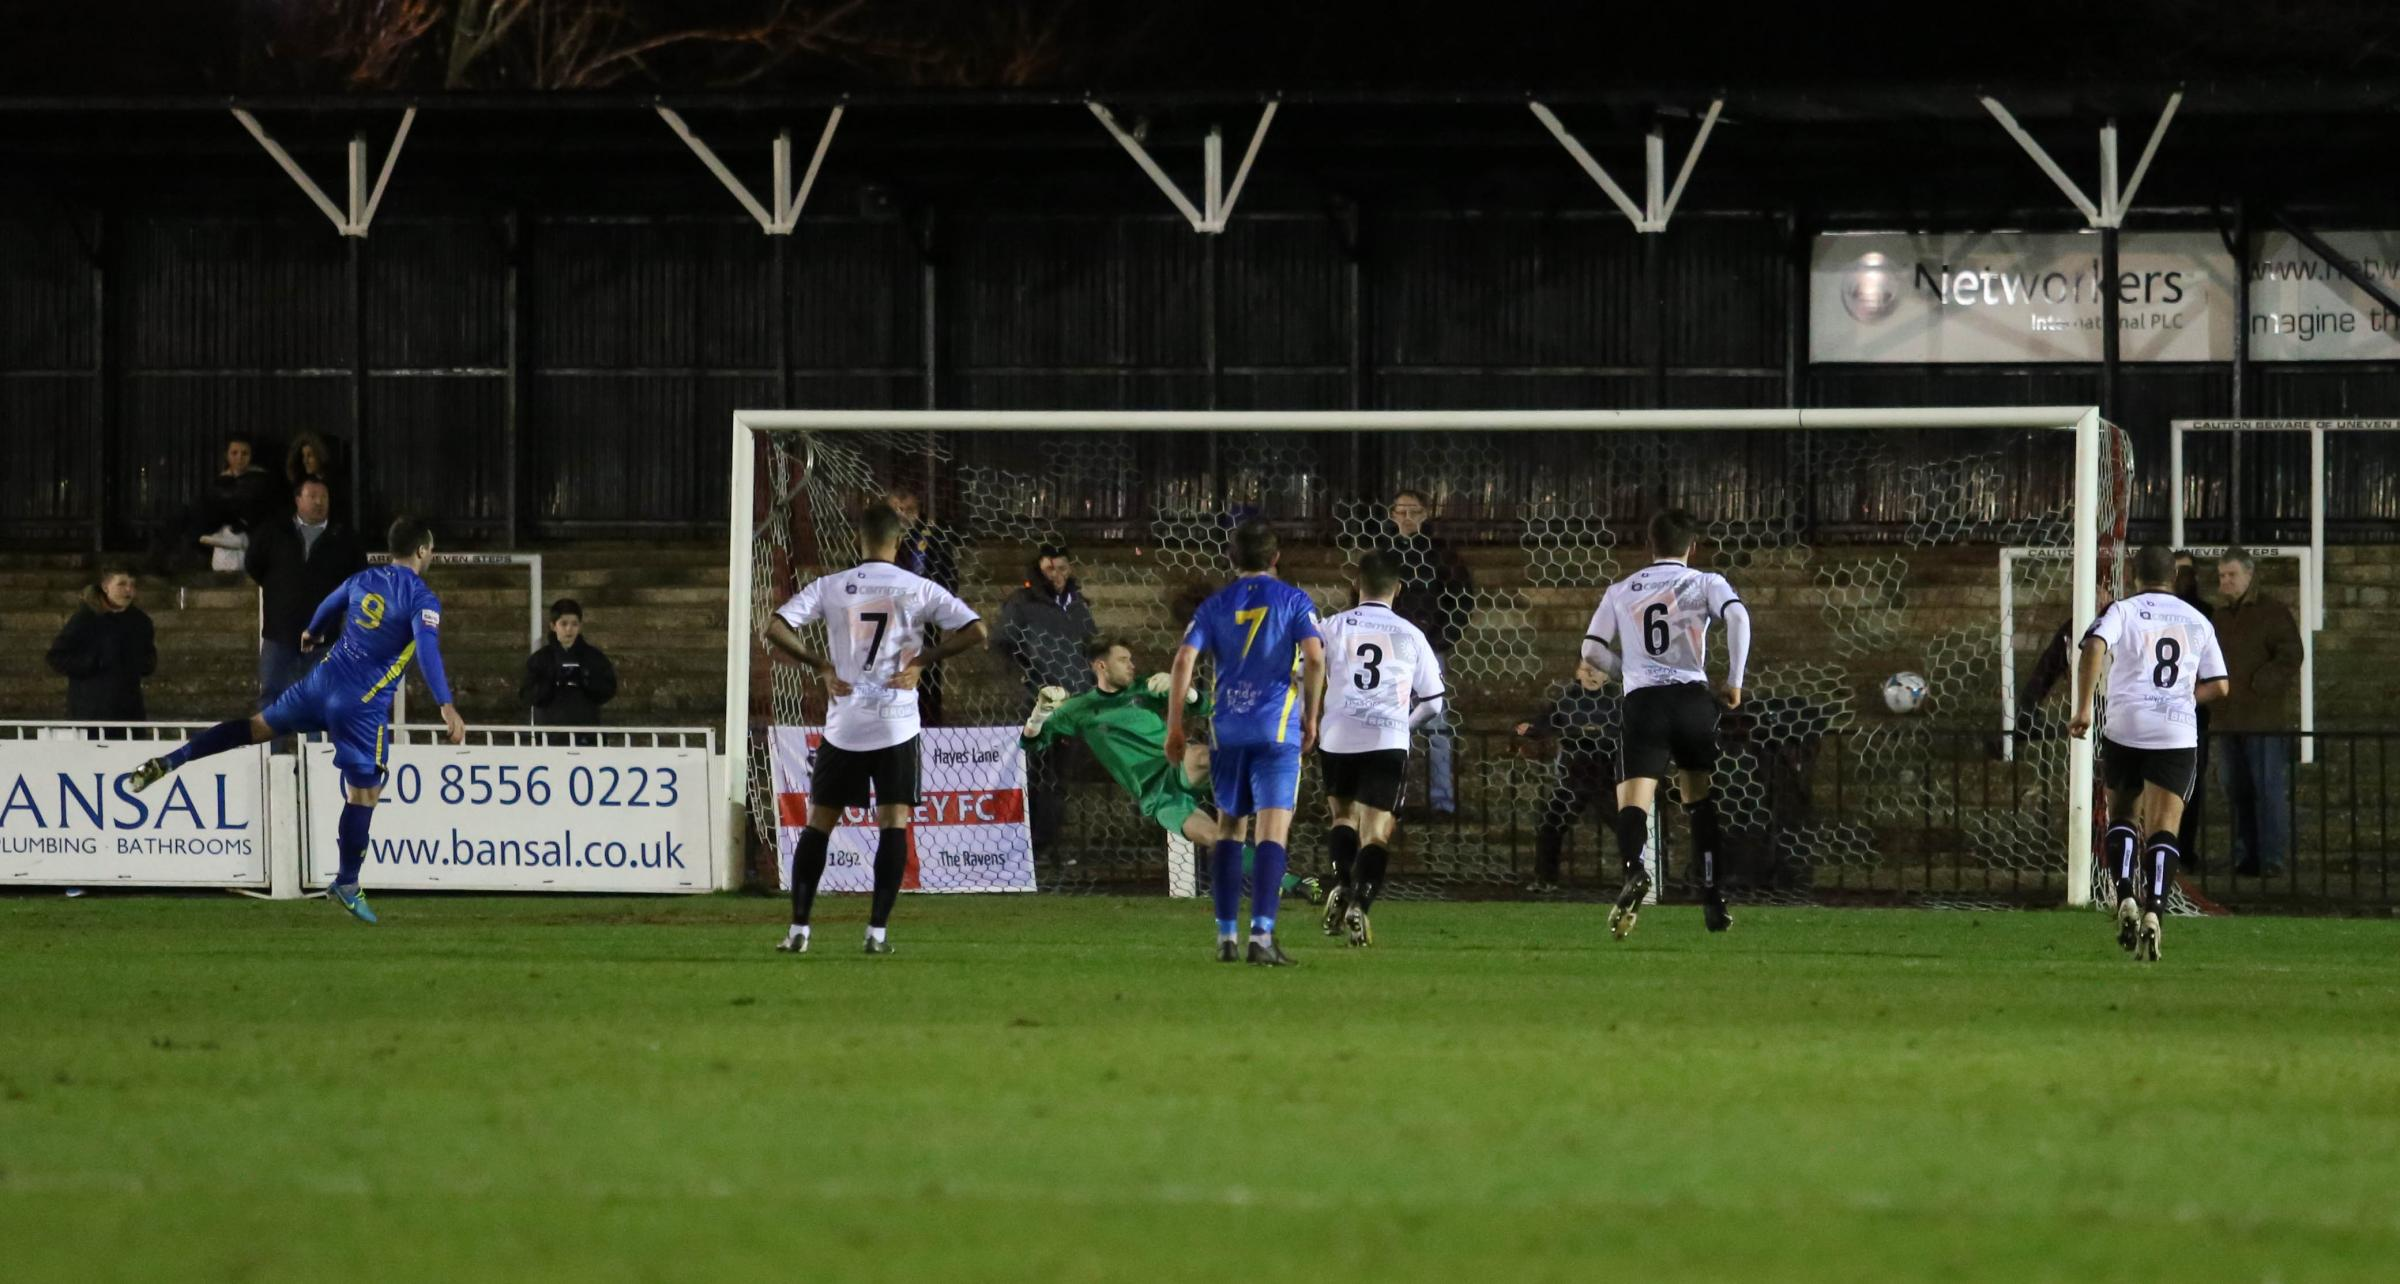 On terms — Sam Higgins equalises from the penalty spot for Concord Rangers